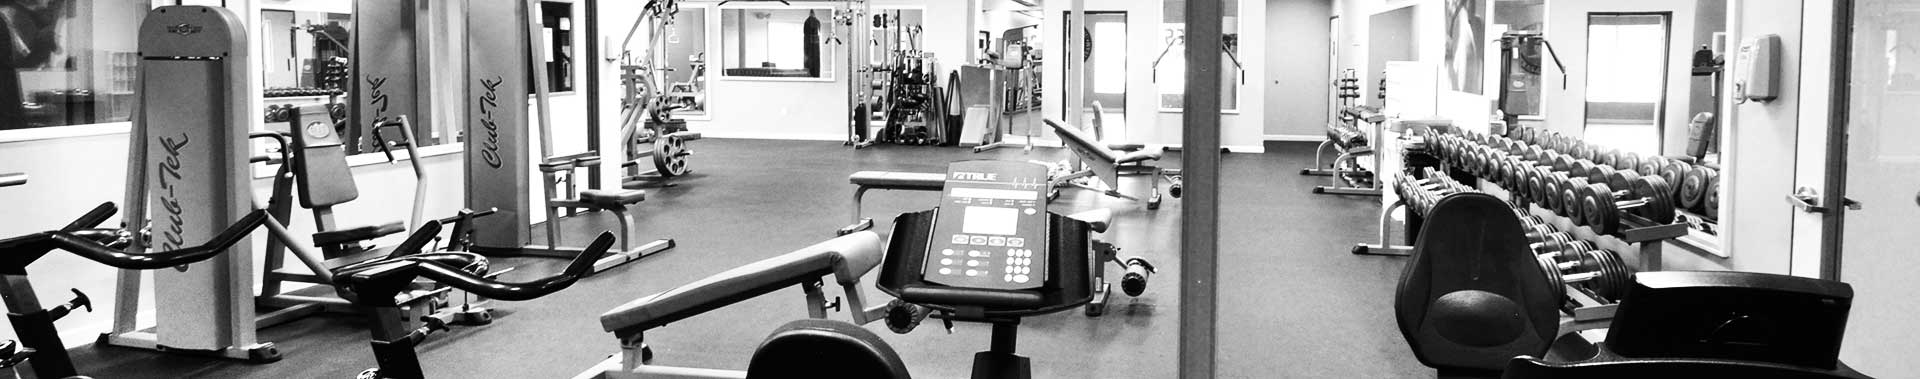 Gym_Layout_Angle2_BW_Narrow_v3